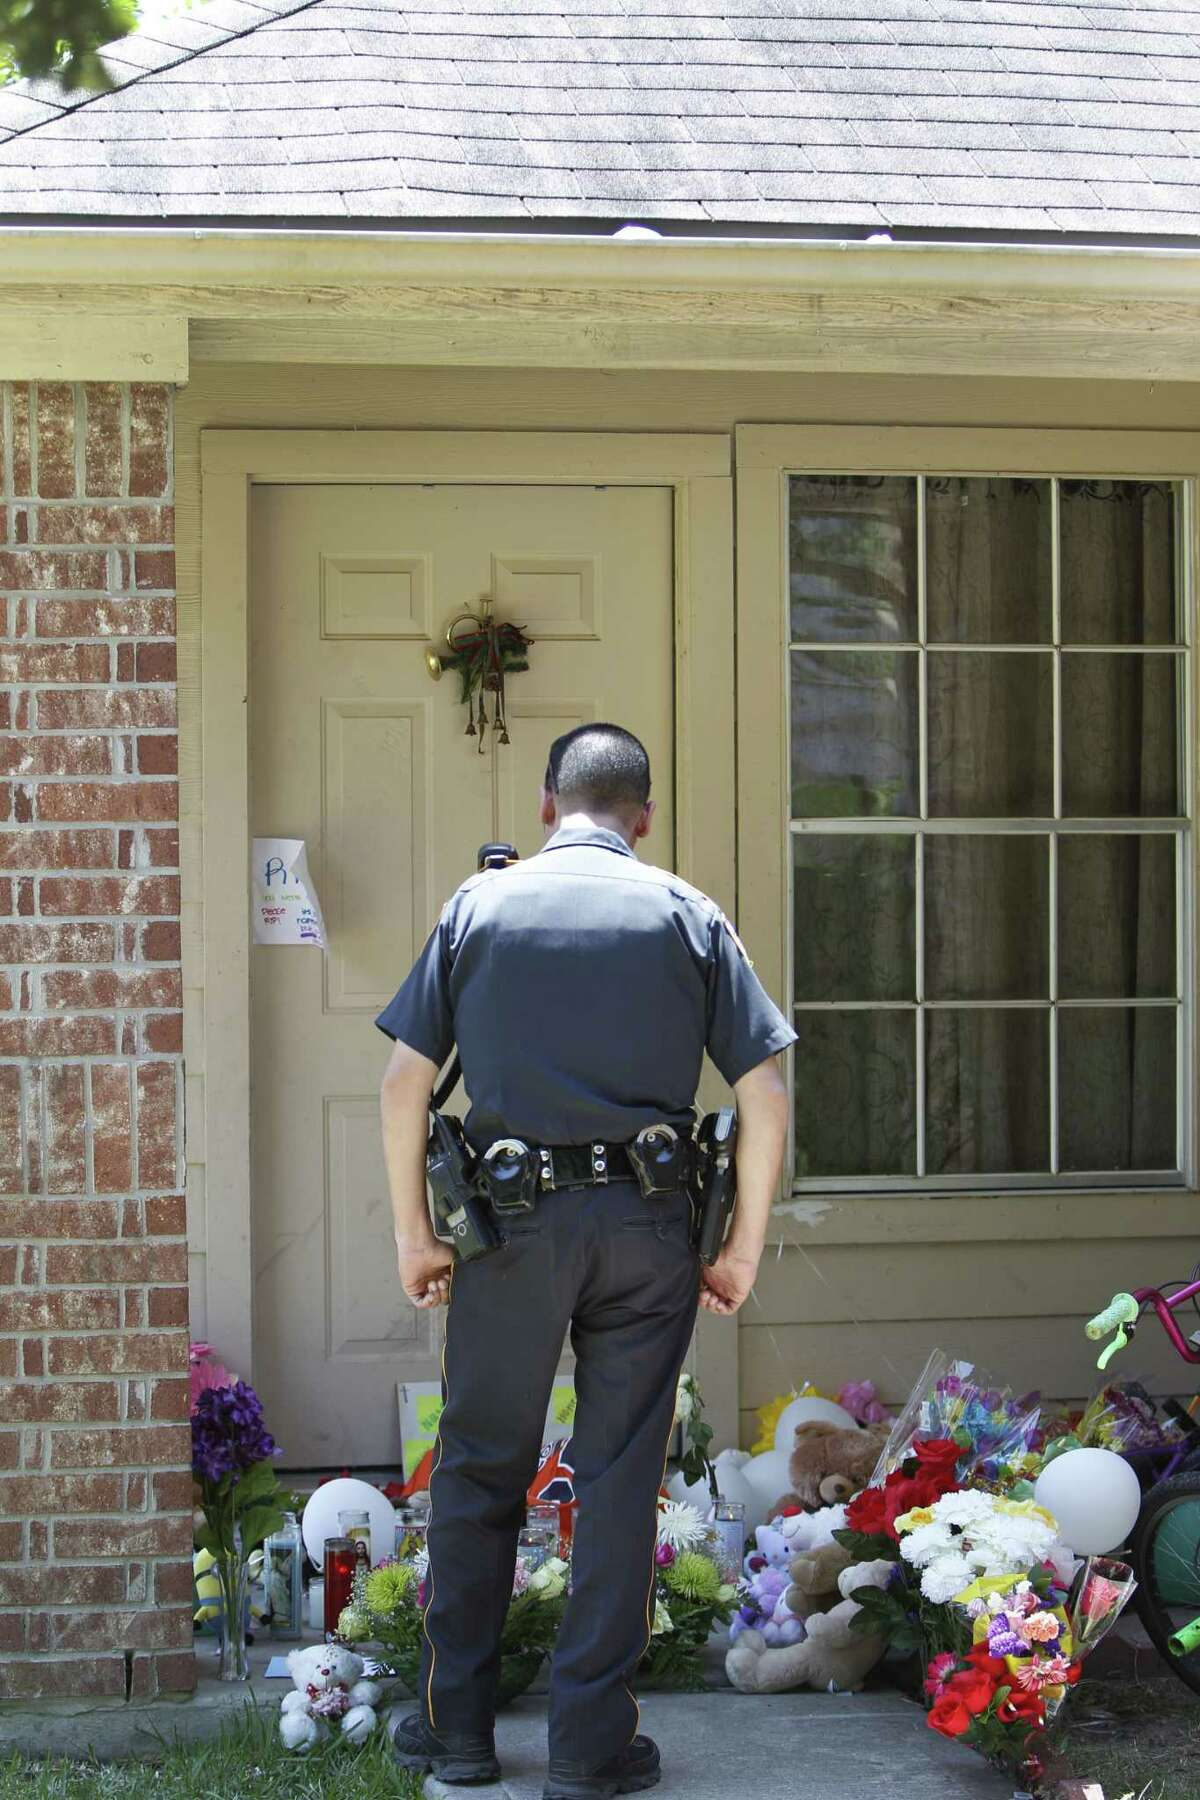 Harris County Sheriffs Officer E.A. Lopez pays his respects Monday, Aug. 10, 2015, at the scene of the home where six children and two adults were murdered Saturday night.